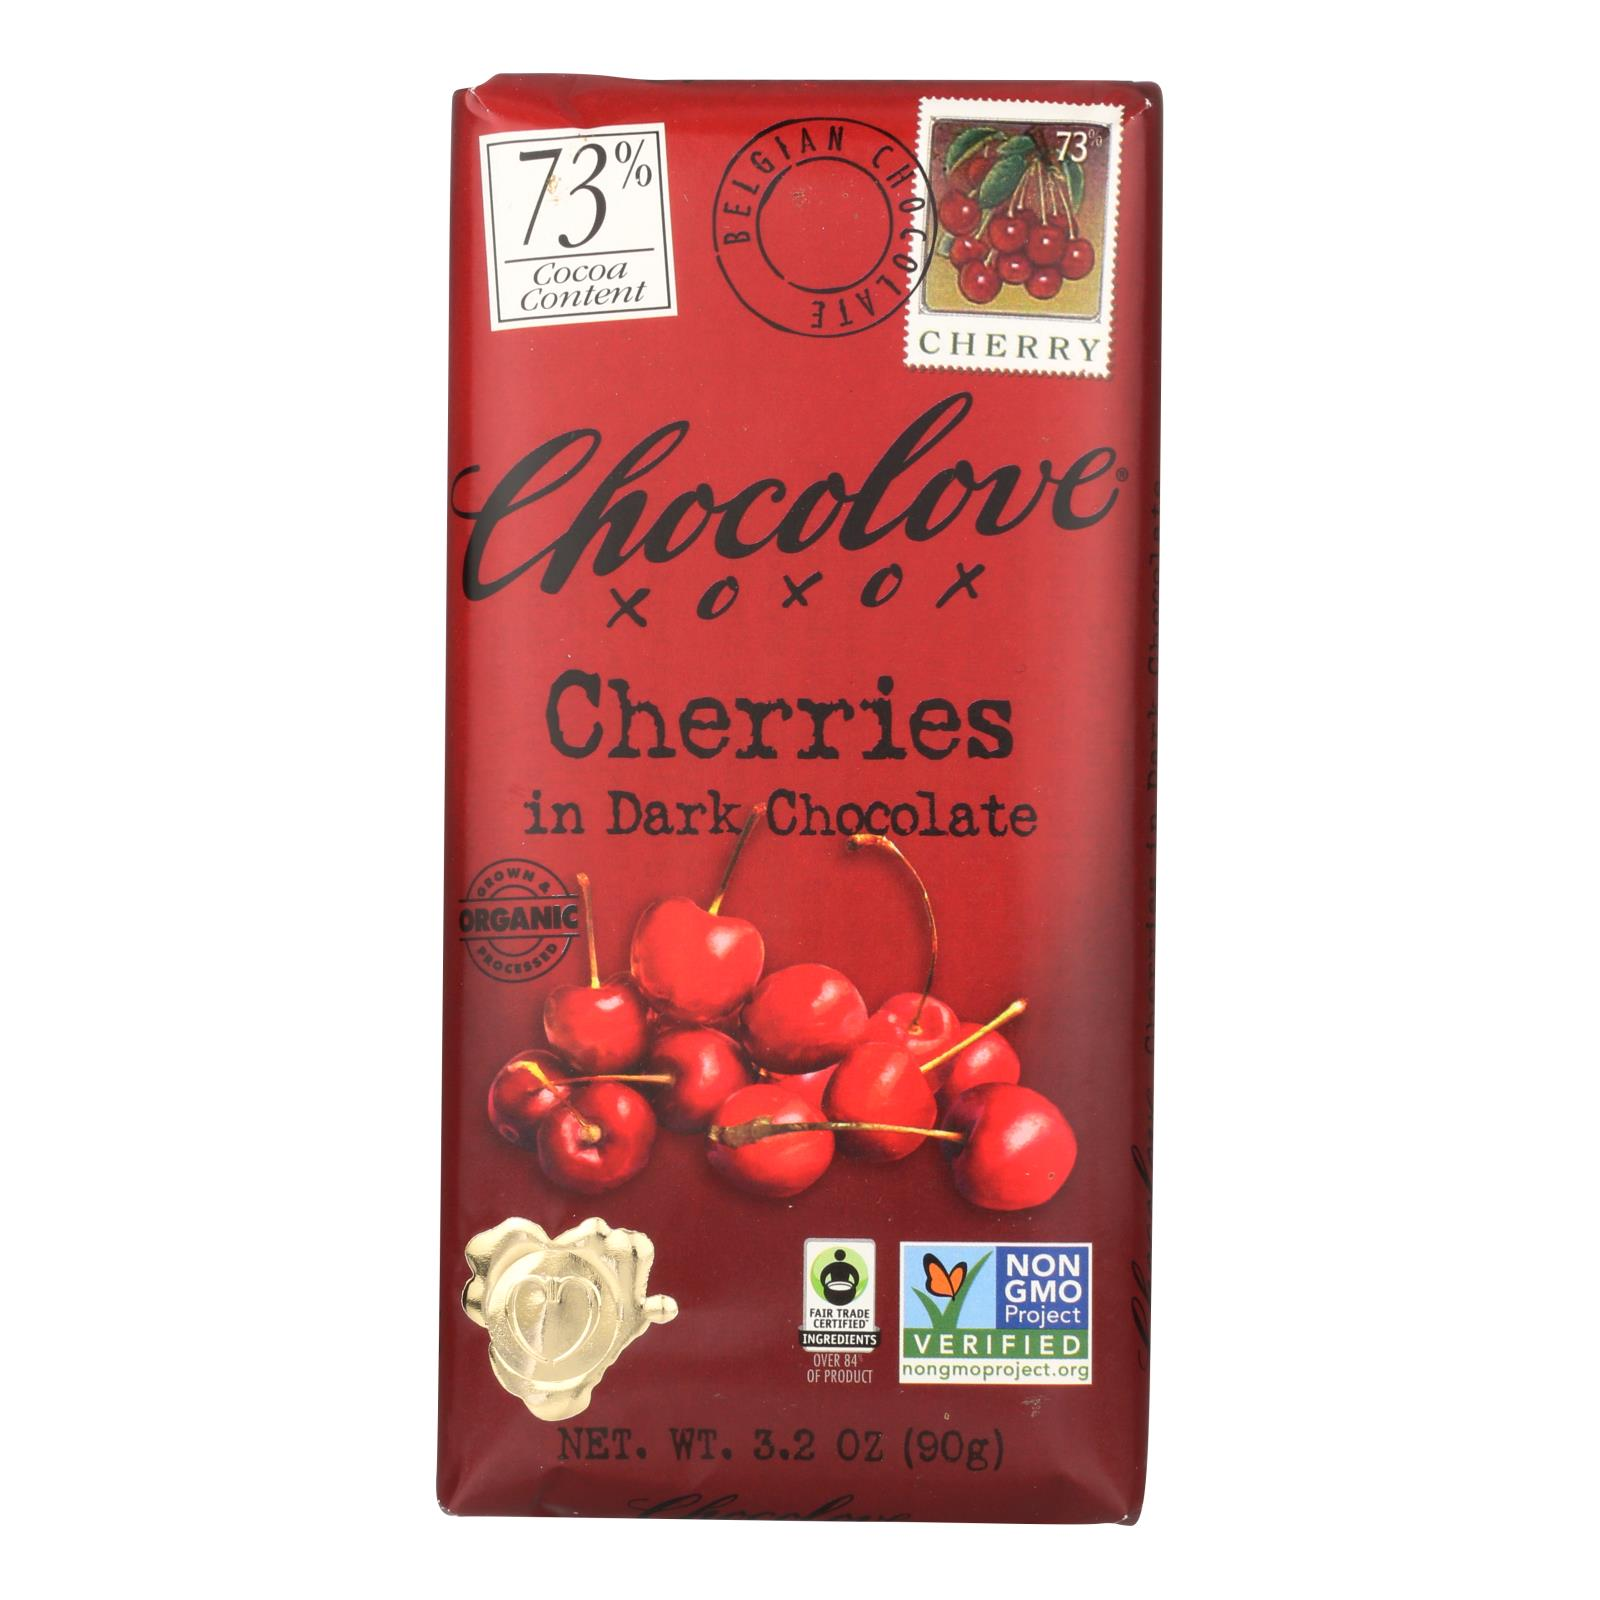 Chocolove Xoxox - Premium Chocolate Bar - Organic Dark Chocolate - Fair Trade Cherries - 3.2 oz Bars - Case of 12